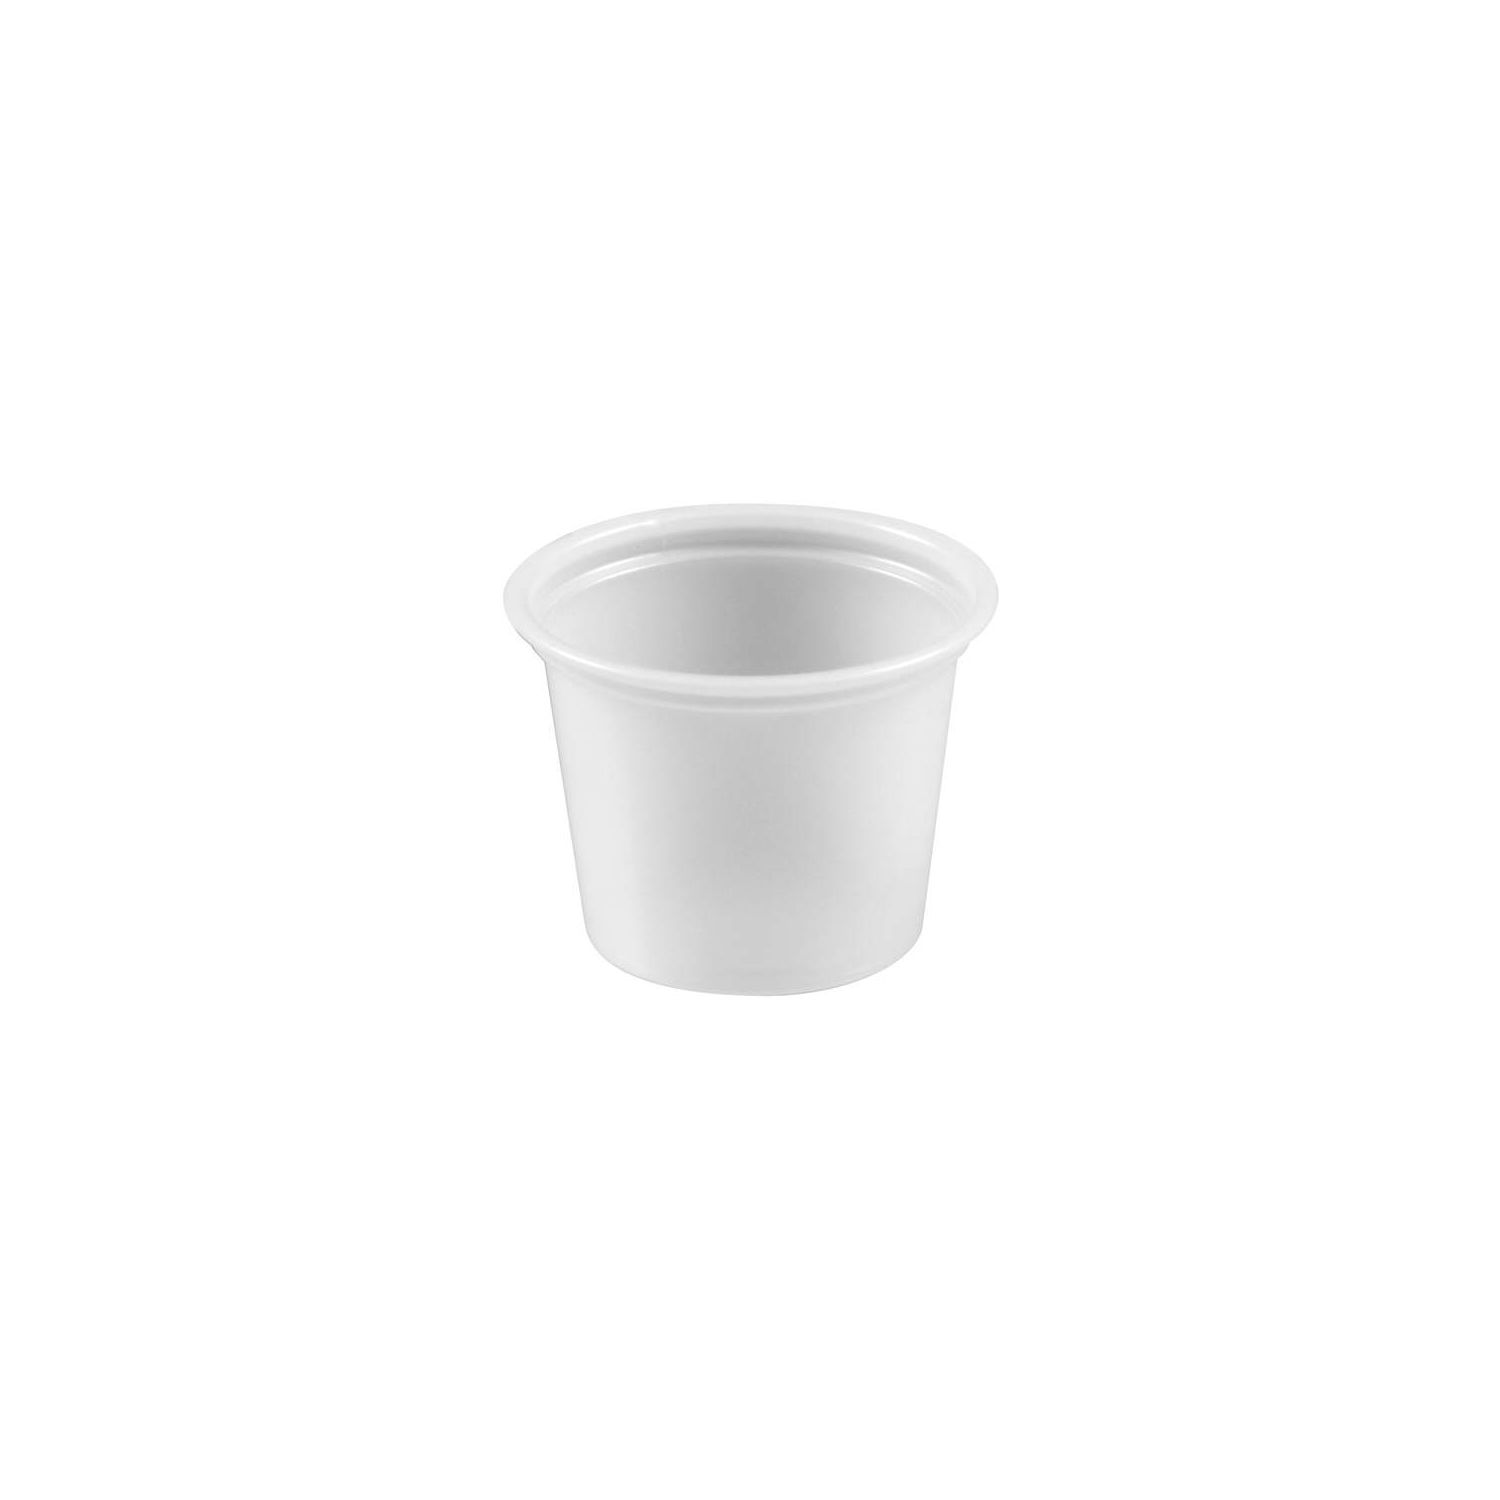 Bakers & Chef's Bakers & Chefs Plastic Portion Cups - 1oz/2,500ct at Sears.com